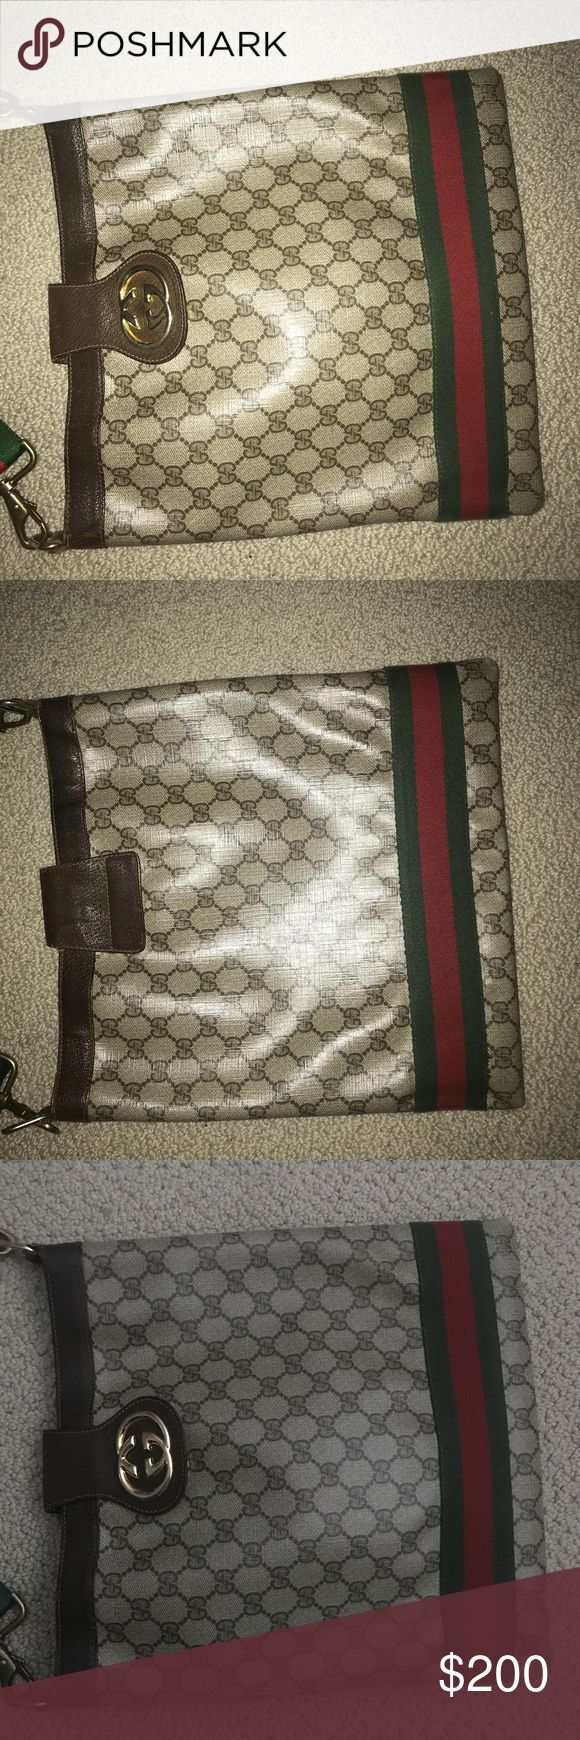 Gucci Bag ***Used Gucci Messenger Bag Authentic Slight damage on corners ***Please purchase with confidence Gucci Bags